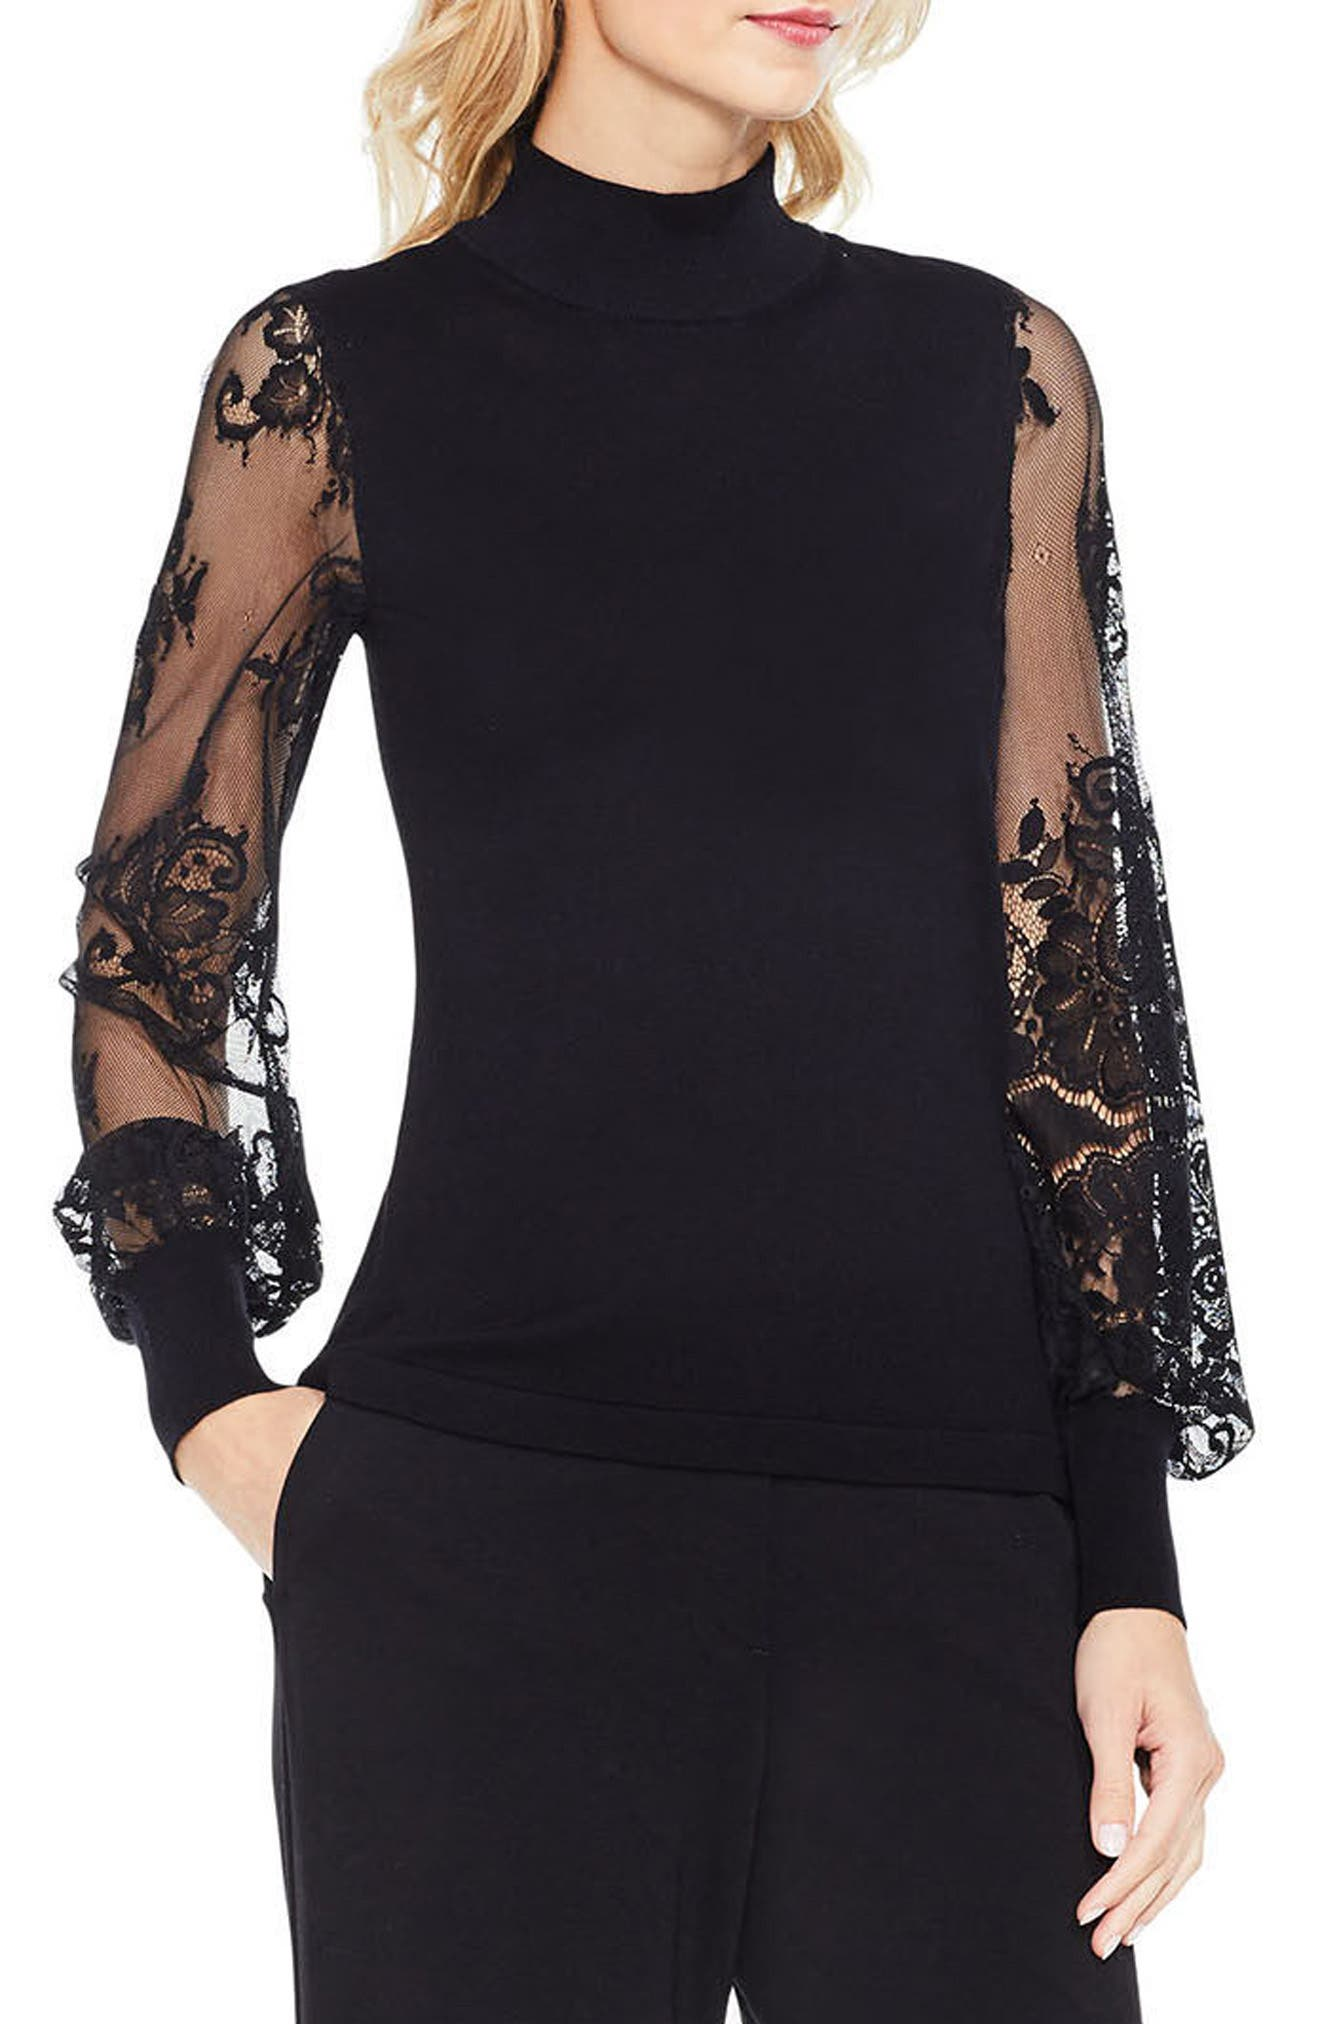 Vince Camuto Lace Sleeve Sweater (Regular & Petite)